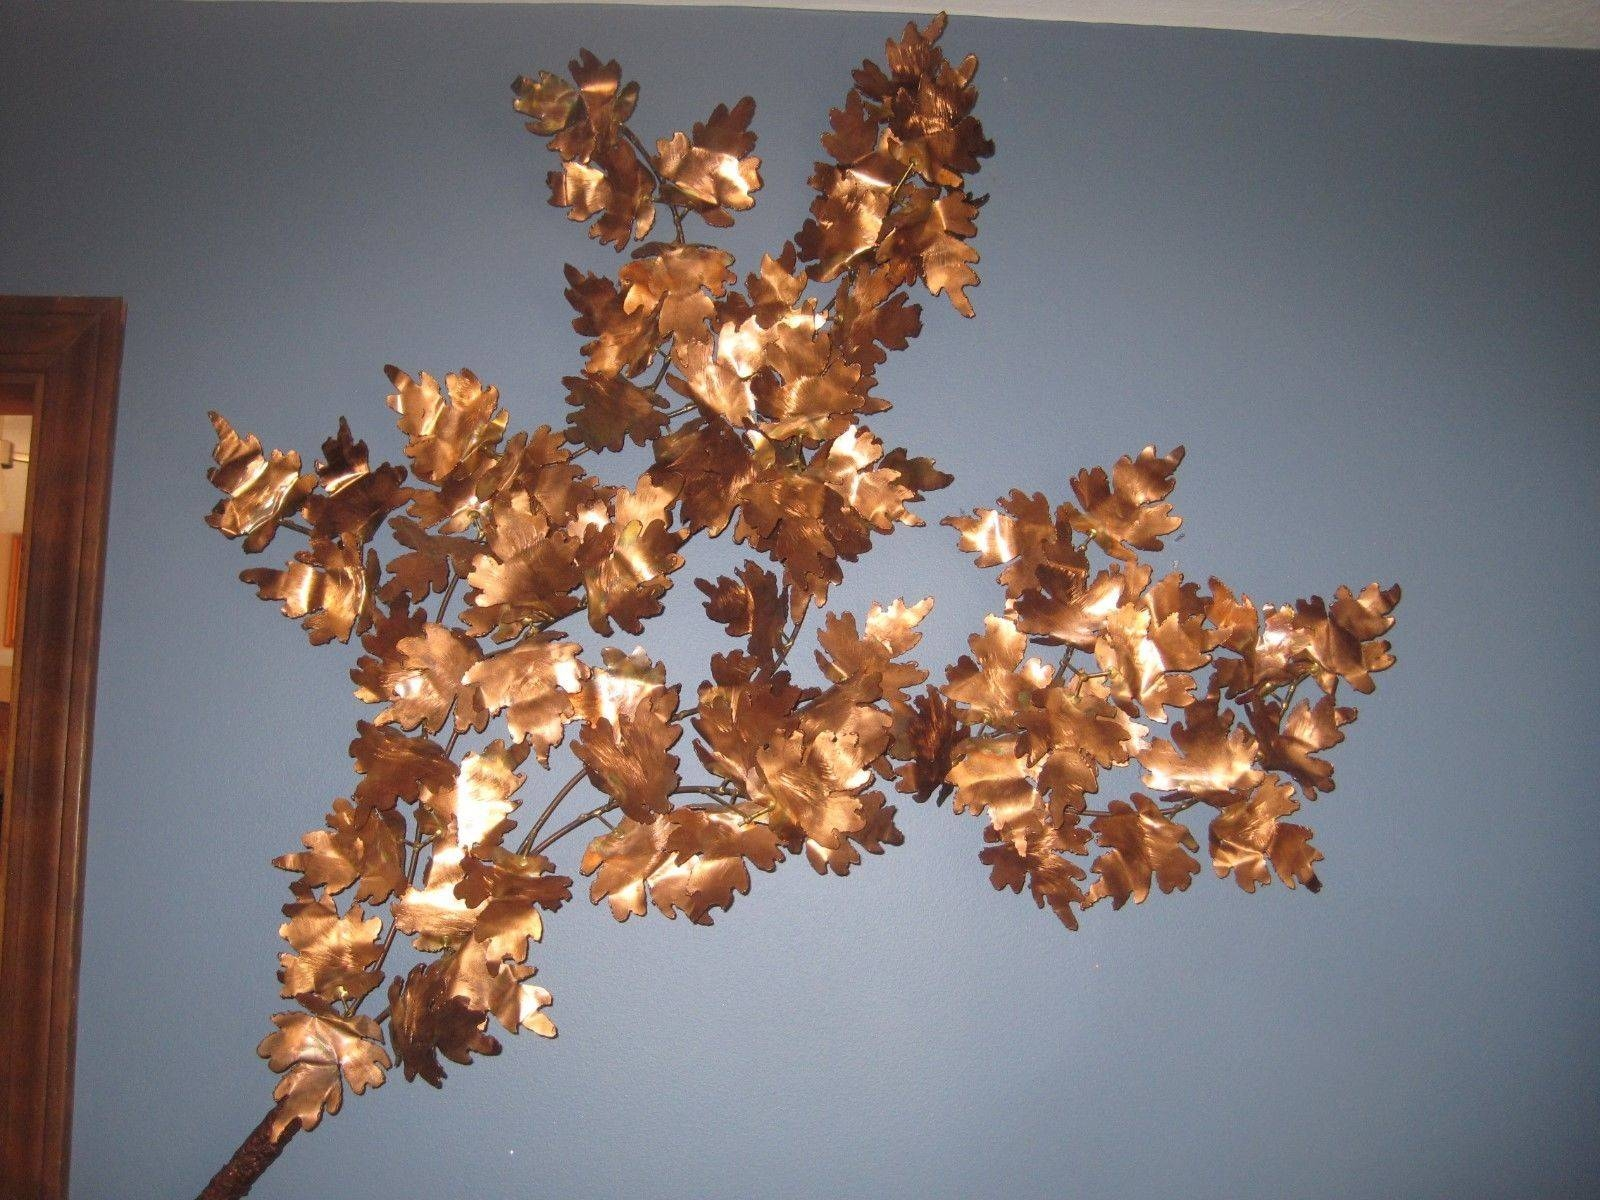 45 Solid Copper Metal Branch Maple Leaves 3d Wall Art Sculpture Inside 2017 3d Metal Wall Art Sculptures (View 15 of 20)